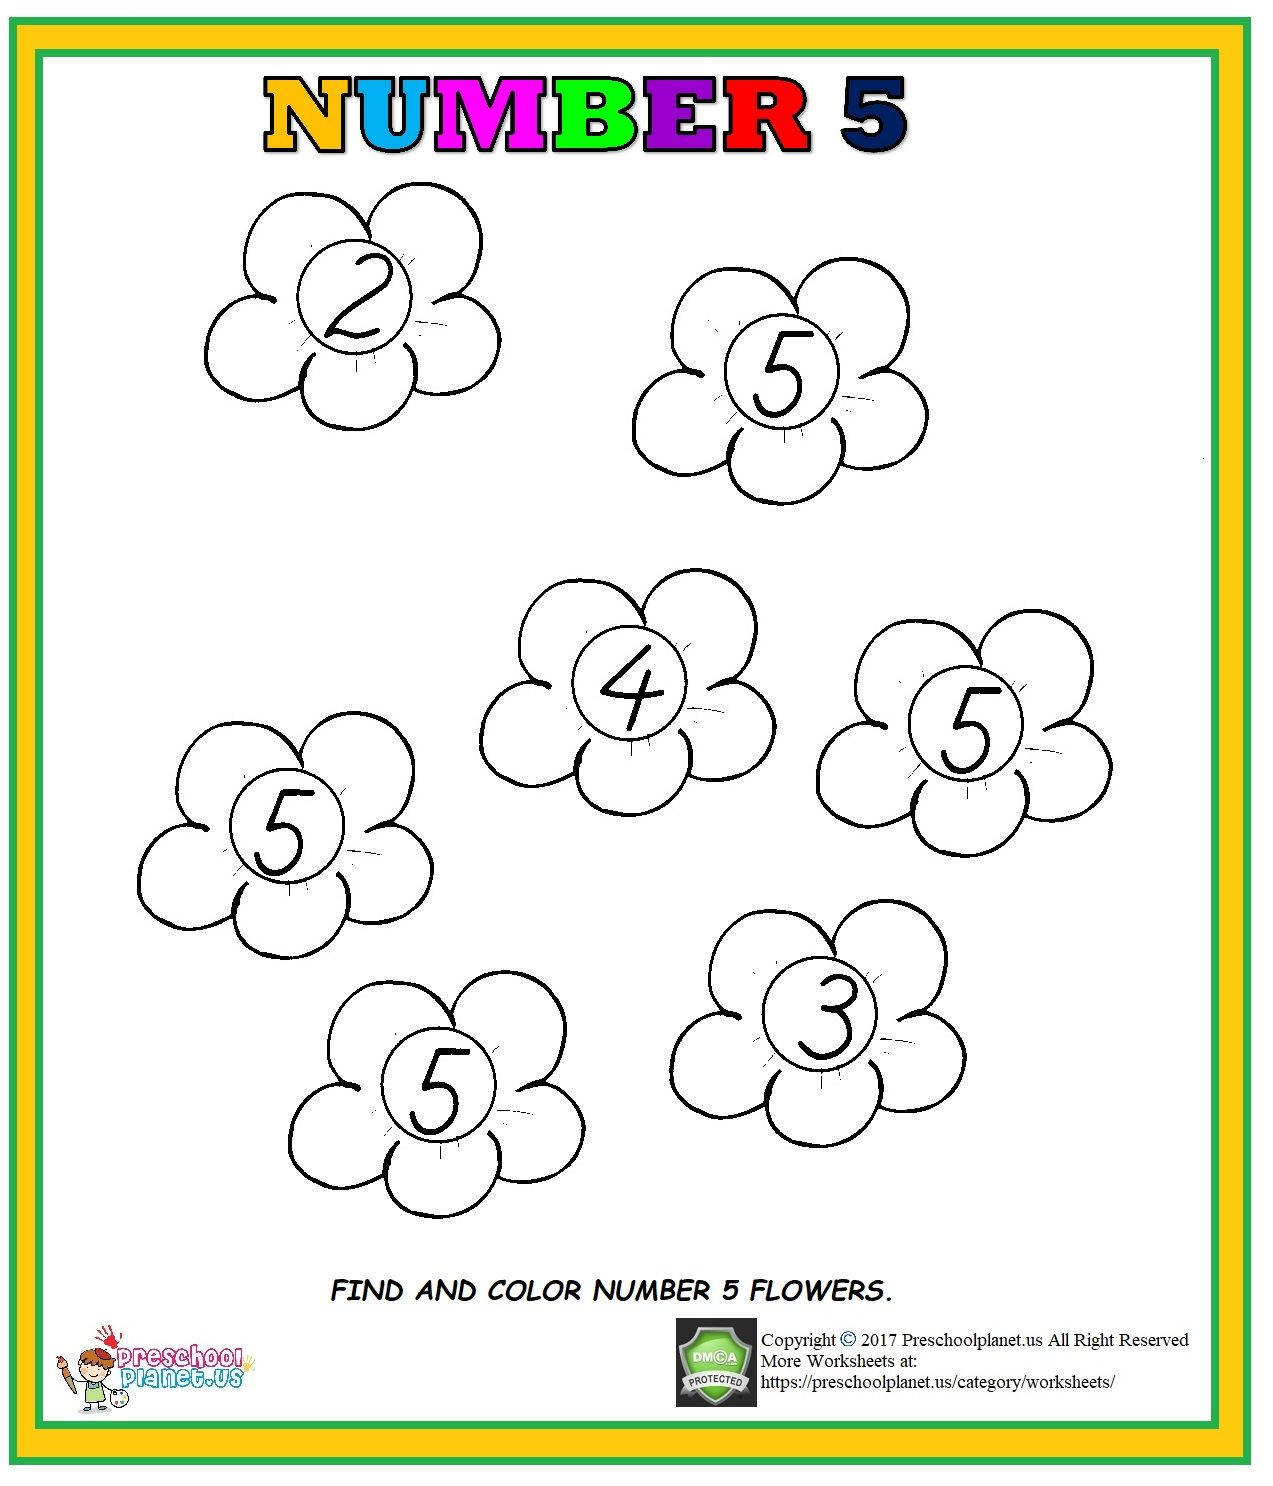 Number 5 Worksheet For Preschool